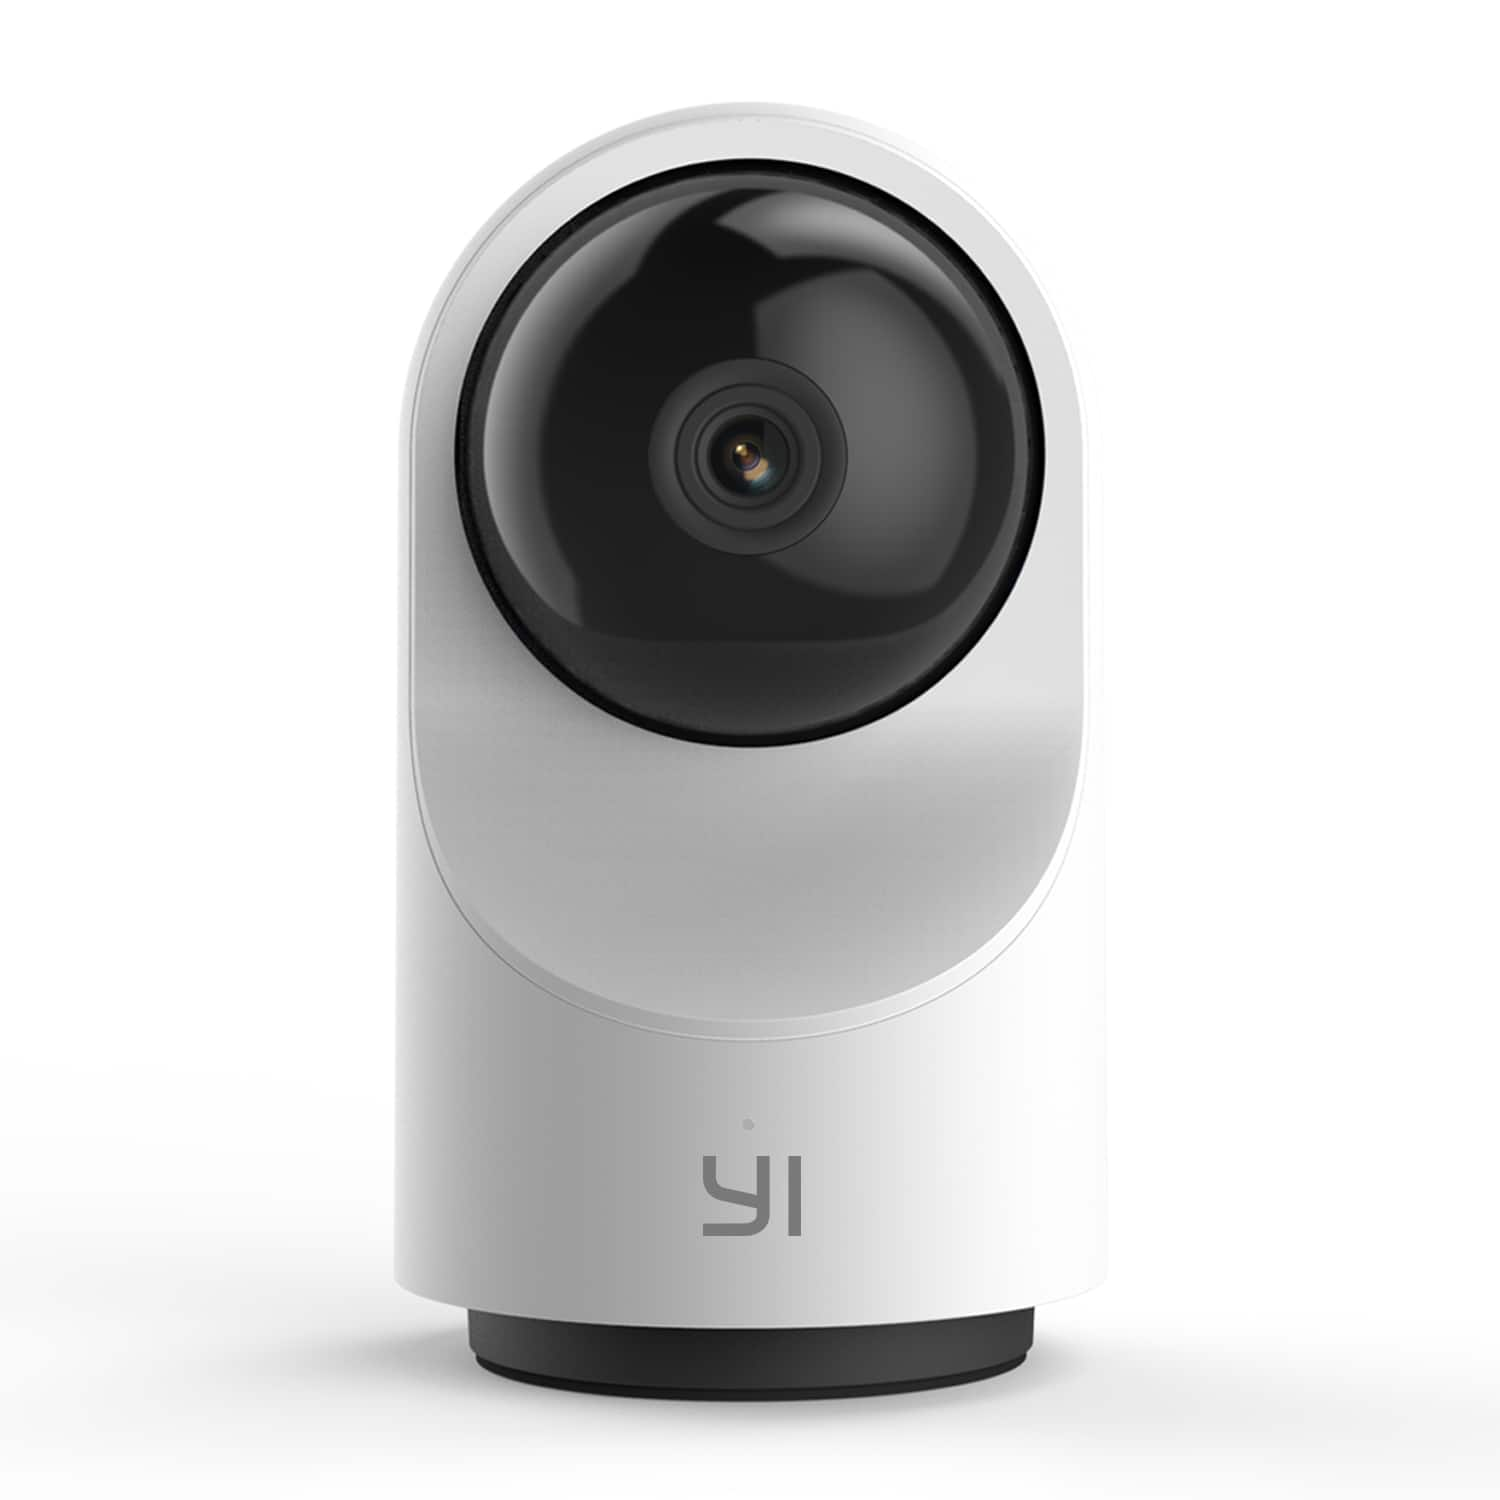 YI Smart Dome Security Camera X, AI-Powered 1080p WiFi IP Home Surveillance System - $39